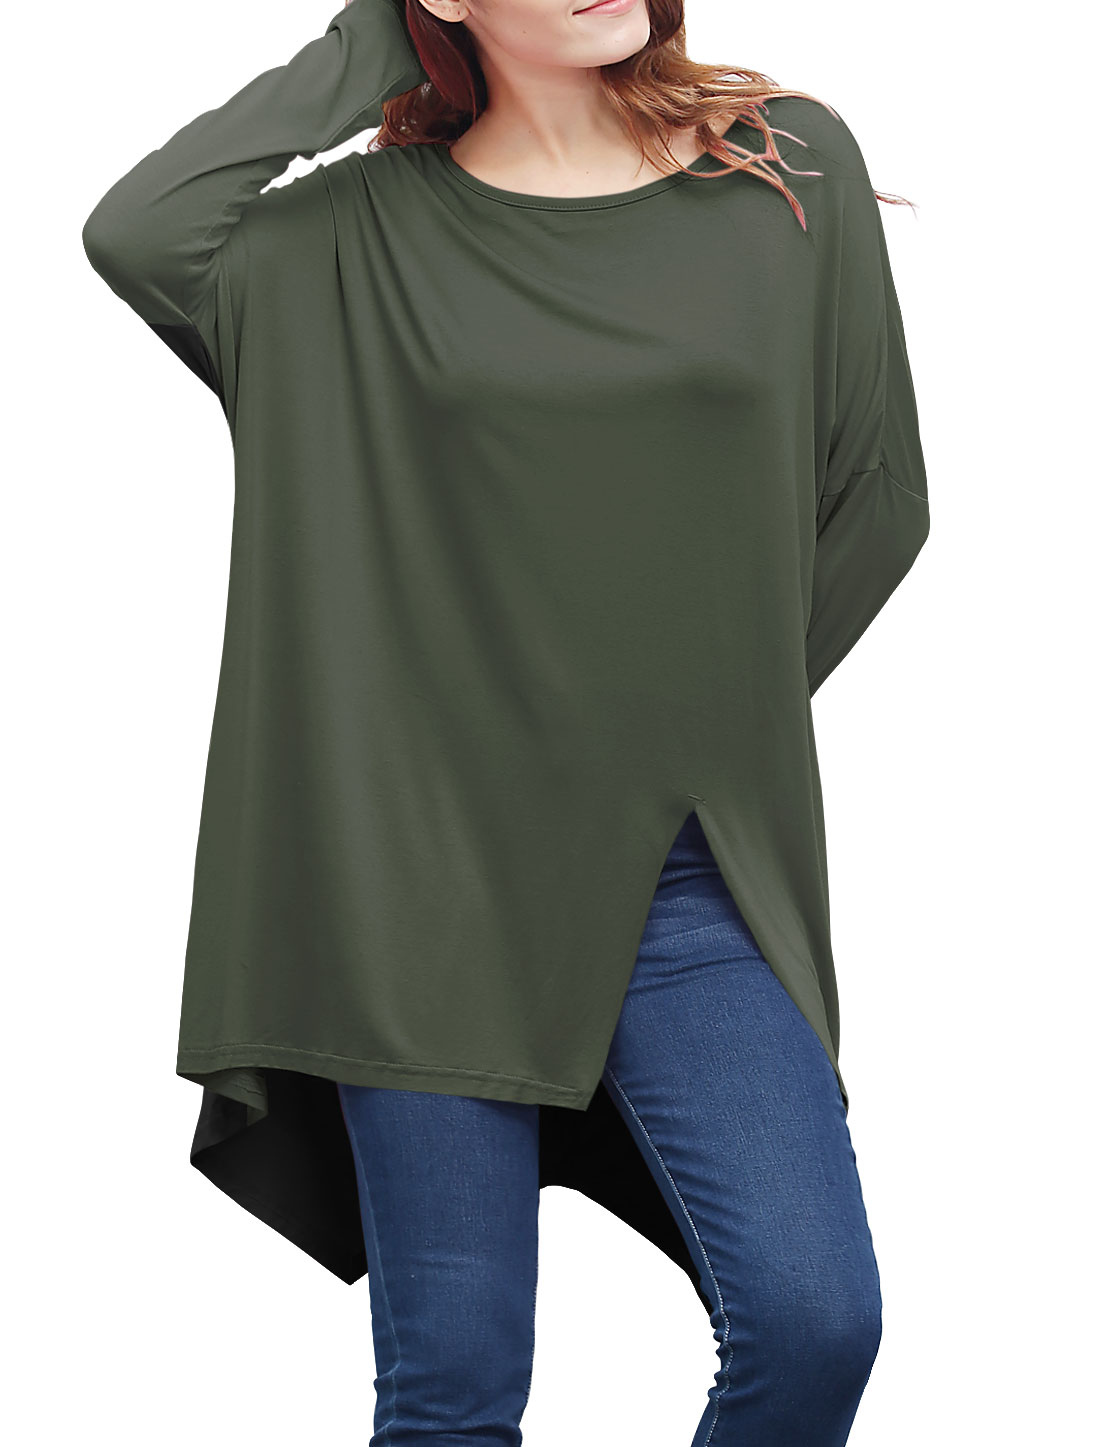 Women Batwing Sleeves Front Slit Oversized Tunic Top Green XS